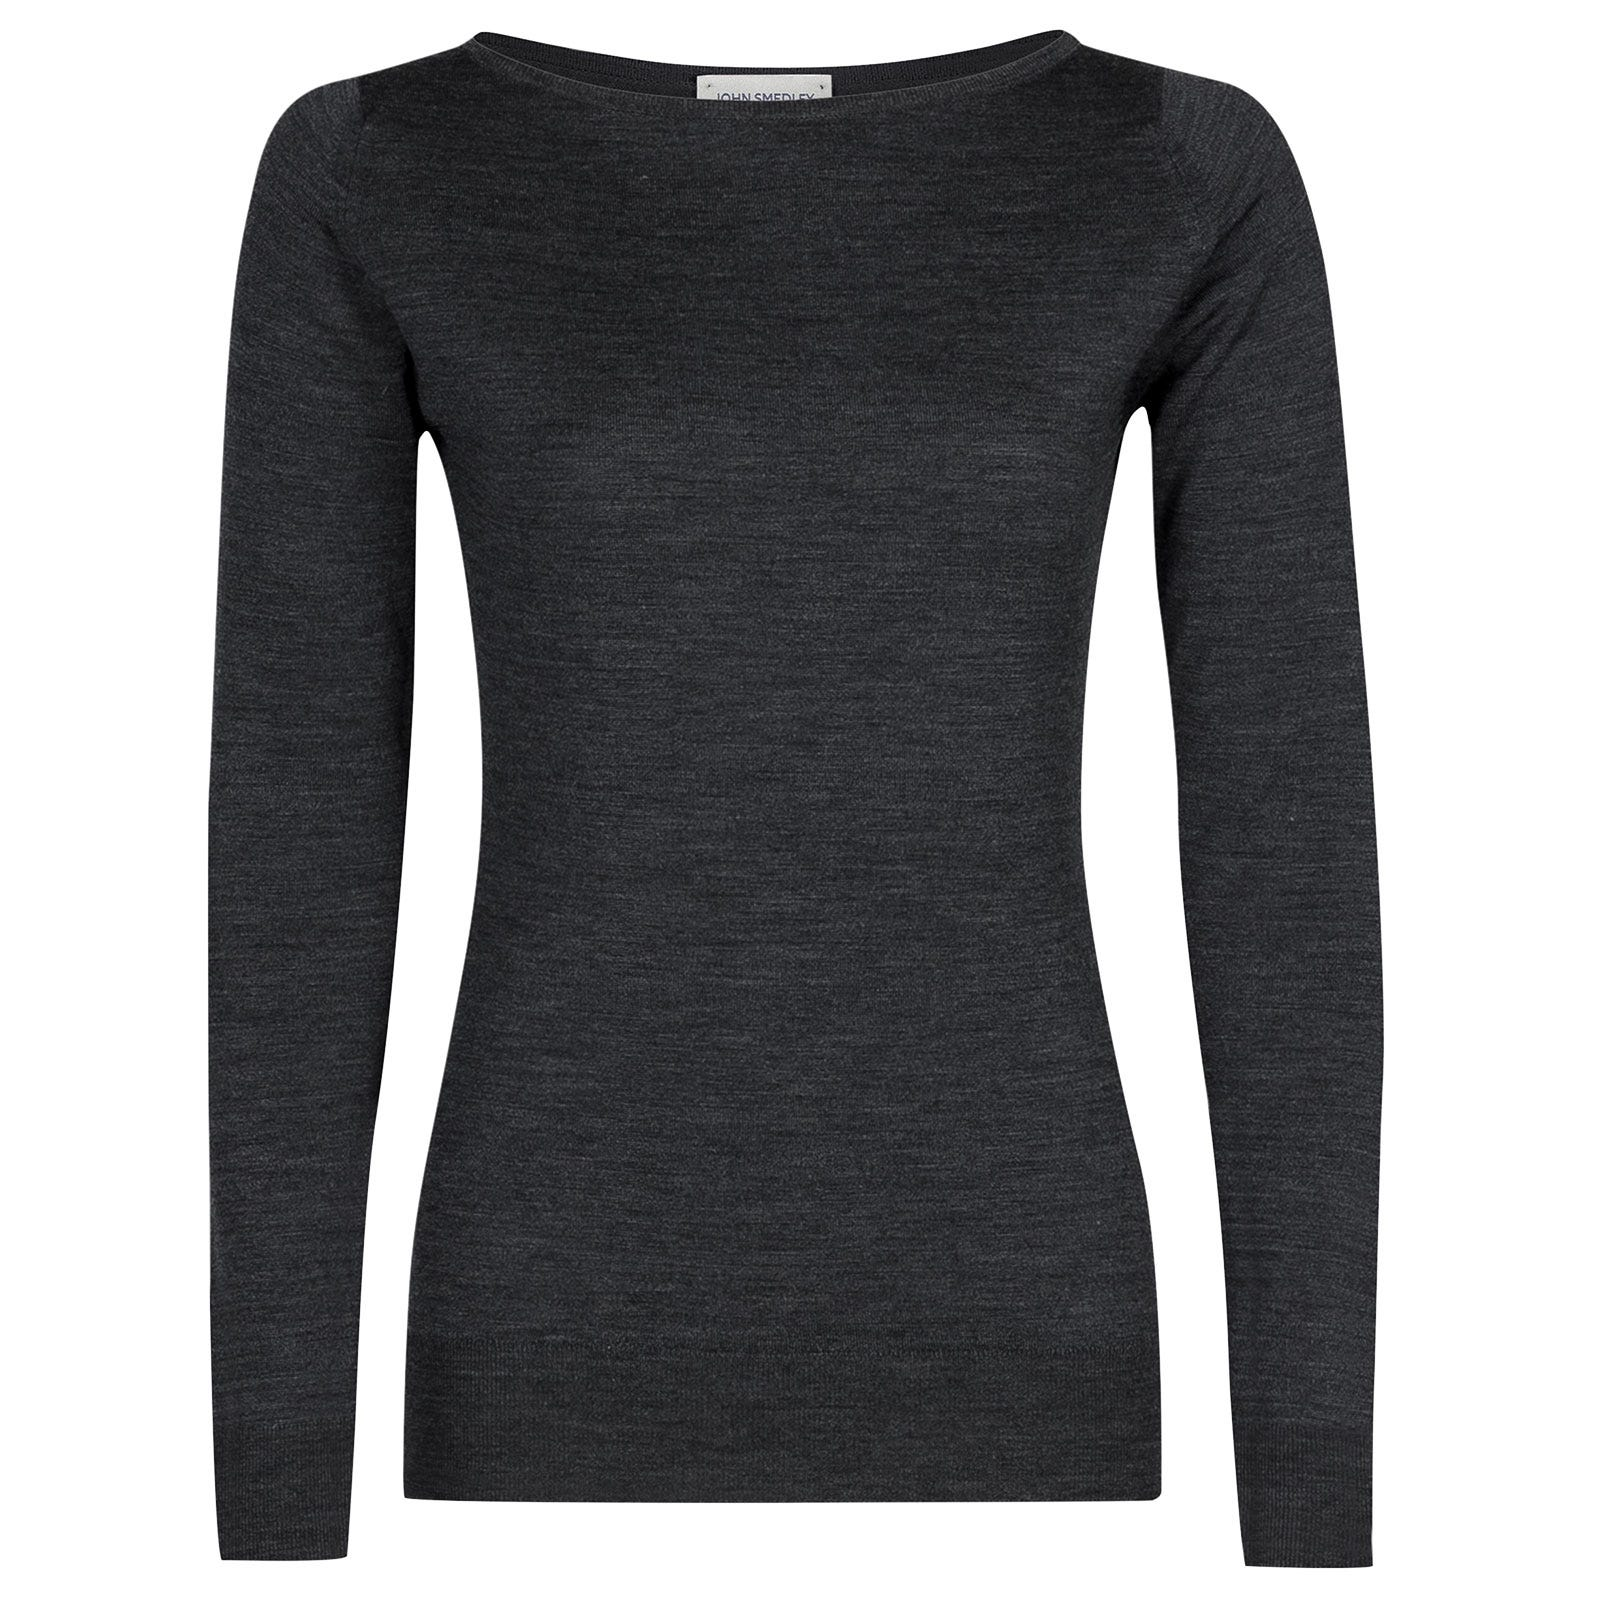 John Smedley susan Merino Wool Sweater in Charcoal-M